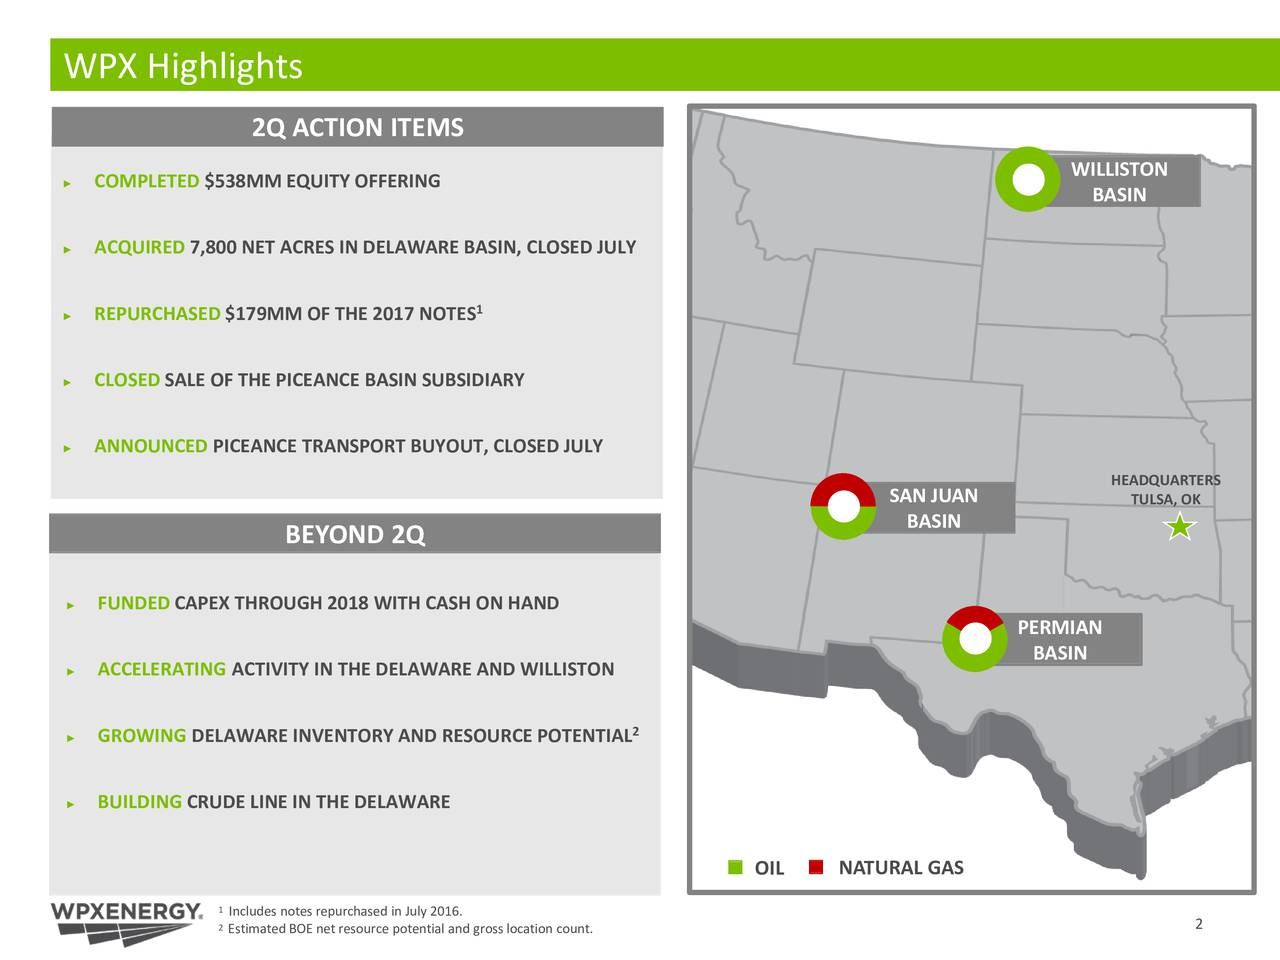 2Q ACTION ITEMS WILLISTON COMPLETED $538MM EQUITY OFFERING BASIN ACQUIRED 7,800 NET ACRES IN DELAWARE BASIN, CLOSED JULY REPURCHASED $179MM OF THE 2017 NOTES 1 CLOSED SALE OF THE PICEANCE BASIN SUBSIDIARY ANNOUNCED PICEANCE TRANSPORT BUYOUT, CLOSED JULY HEADQUARTERS SAN JUAN TULSA, OK BASIN BEYOND 2Q FUNDED CAPEX THROUGH 2018 WITH CASH ON HAND PERMIAN BASIN ACCELERATING ACTIVITY IN THE DELAWARE AND WILLISTON GROWING DELAWARE INVENTORY AND RESOURCE POTENTIAL 2 BUILDING CRUDE LINE IN THE DELAWARE OIL NATURAL GAS 1Includes notes repurchased in July 2016. 2Estimated BOE net resource potential and gross location count. 2